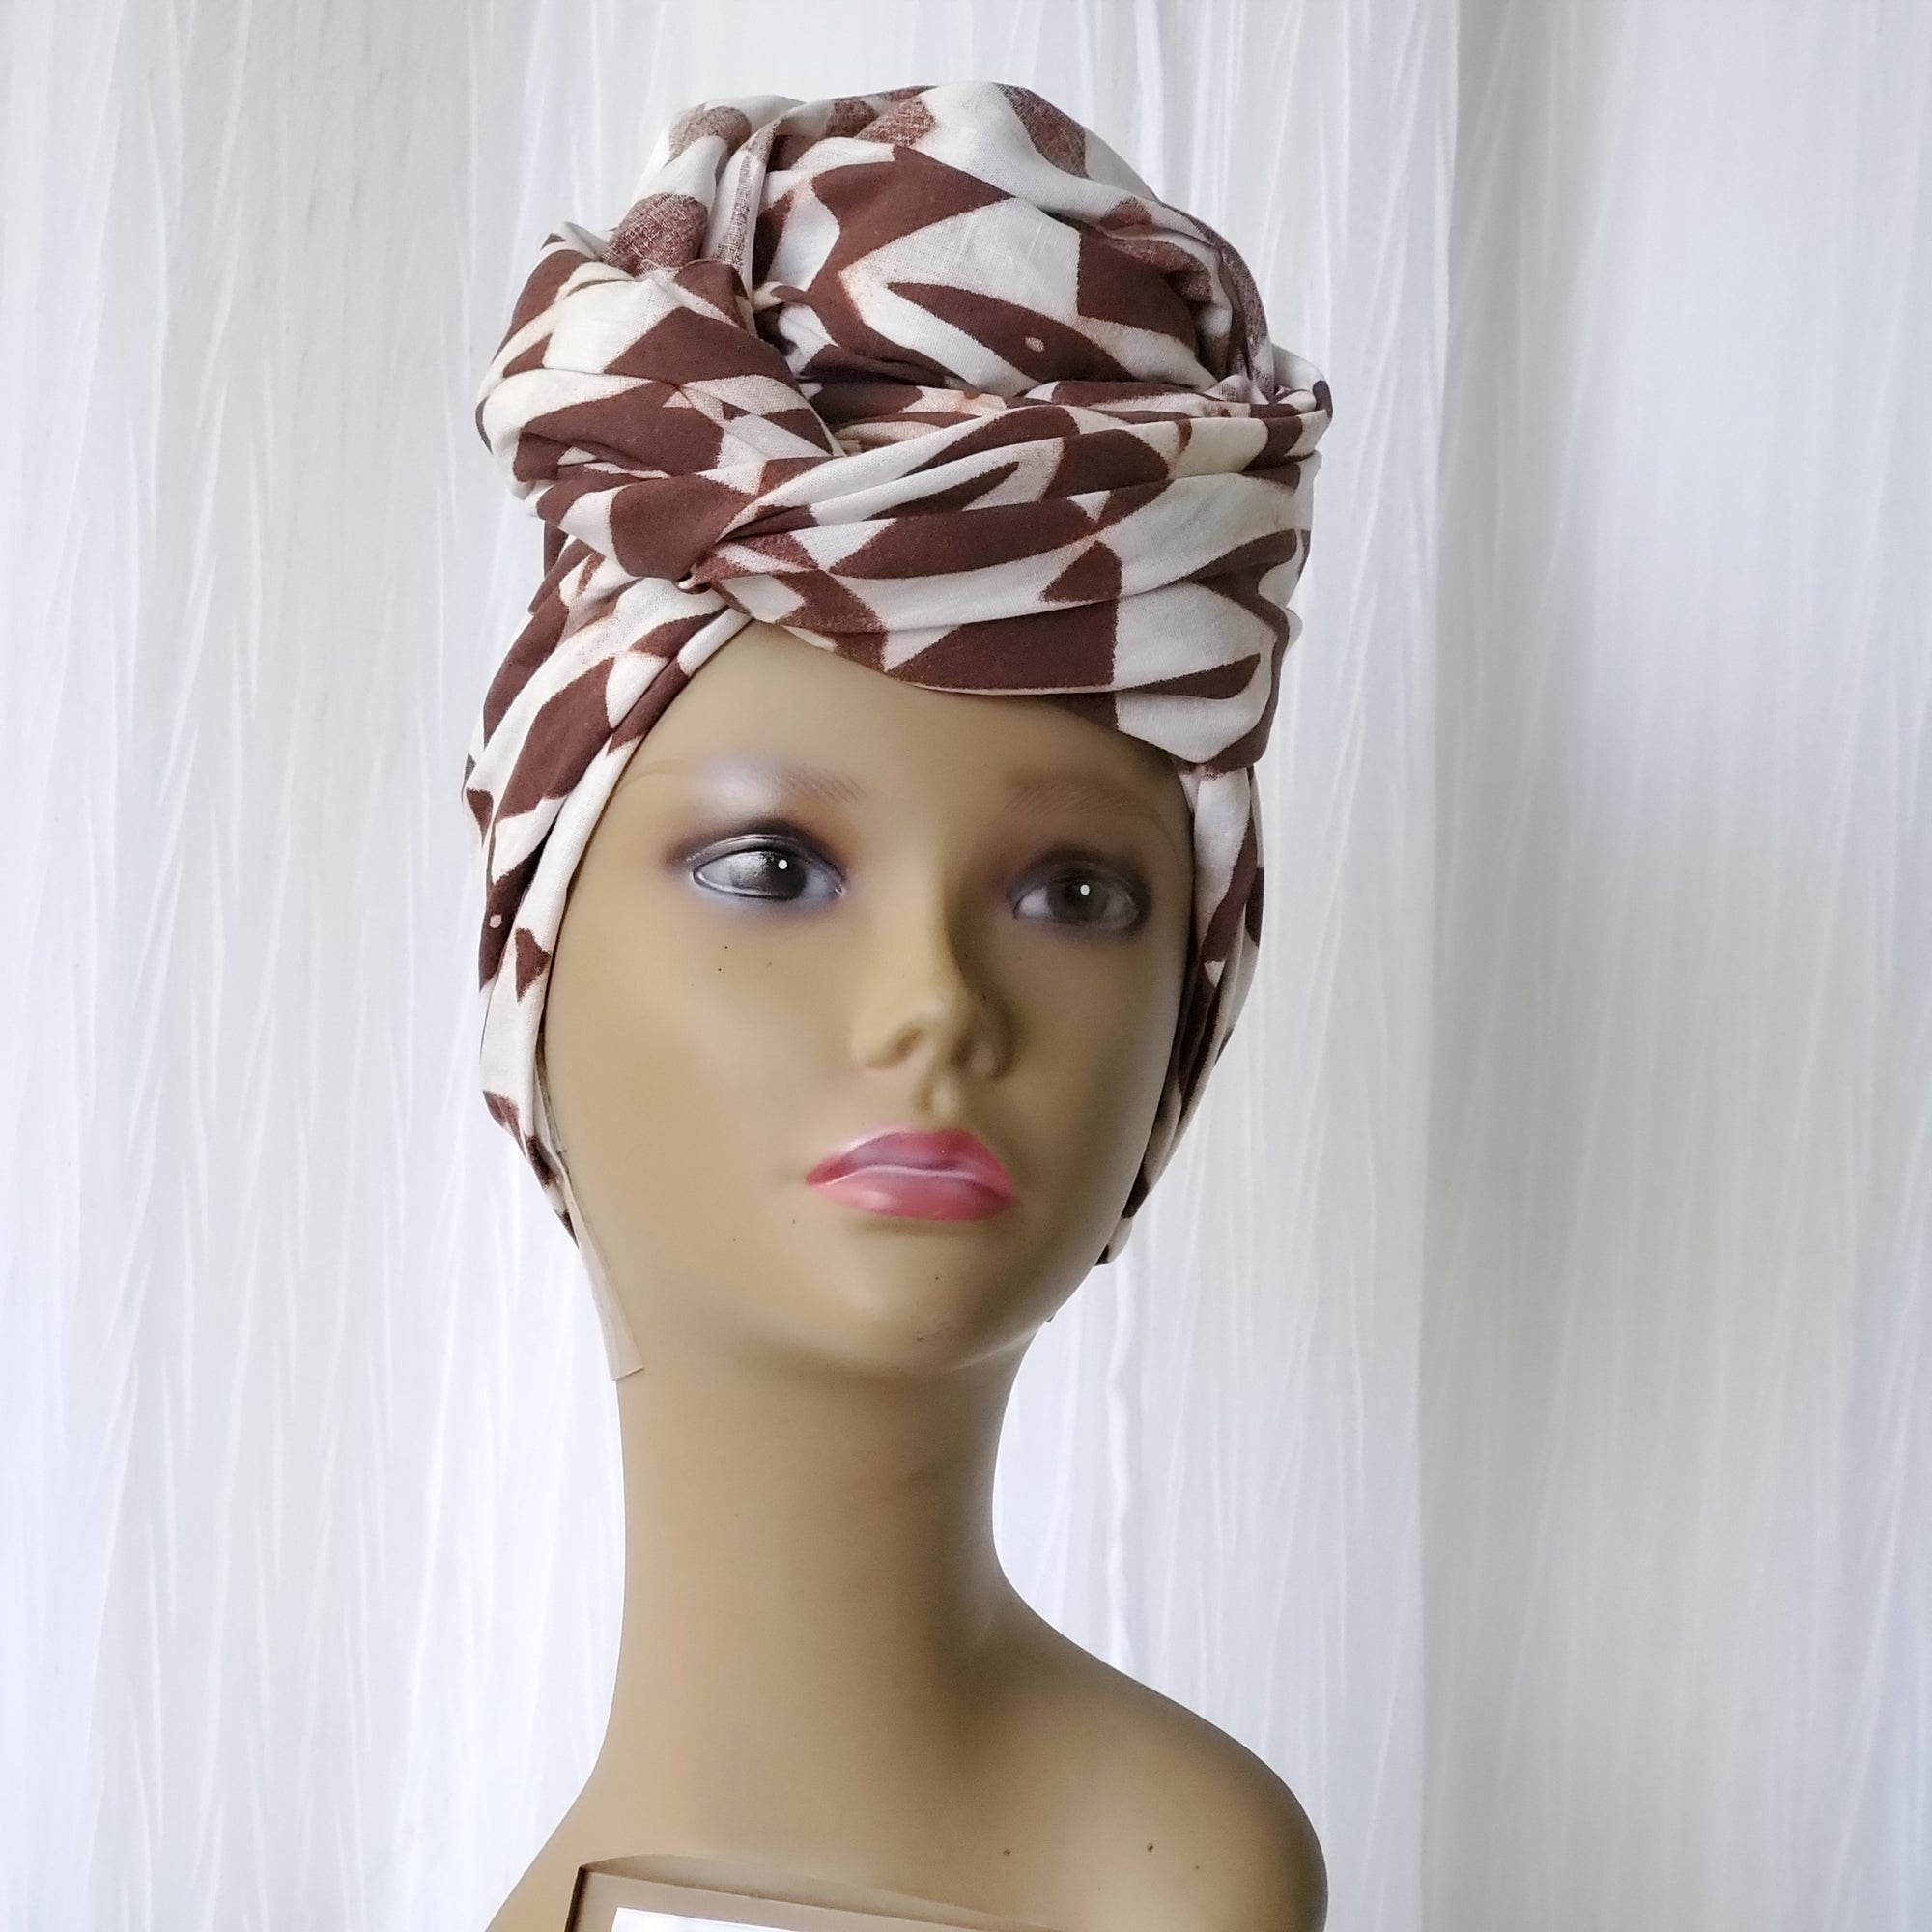 Tribal Print Cotton Headwrap - White/Maroon